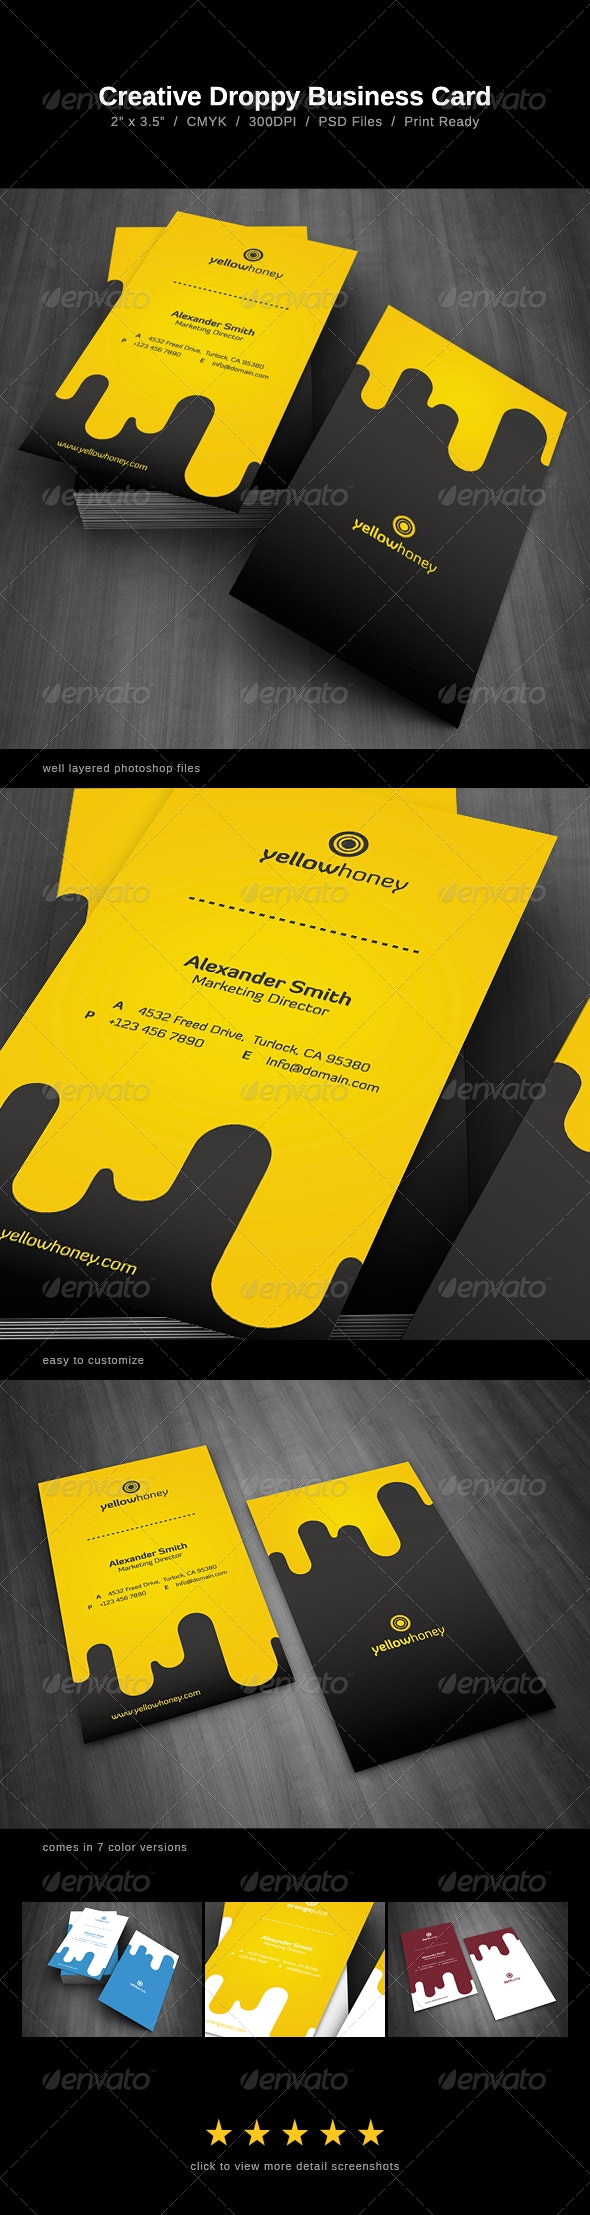 Droppy Business Card - Creative Business Cards